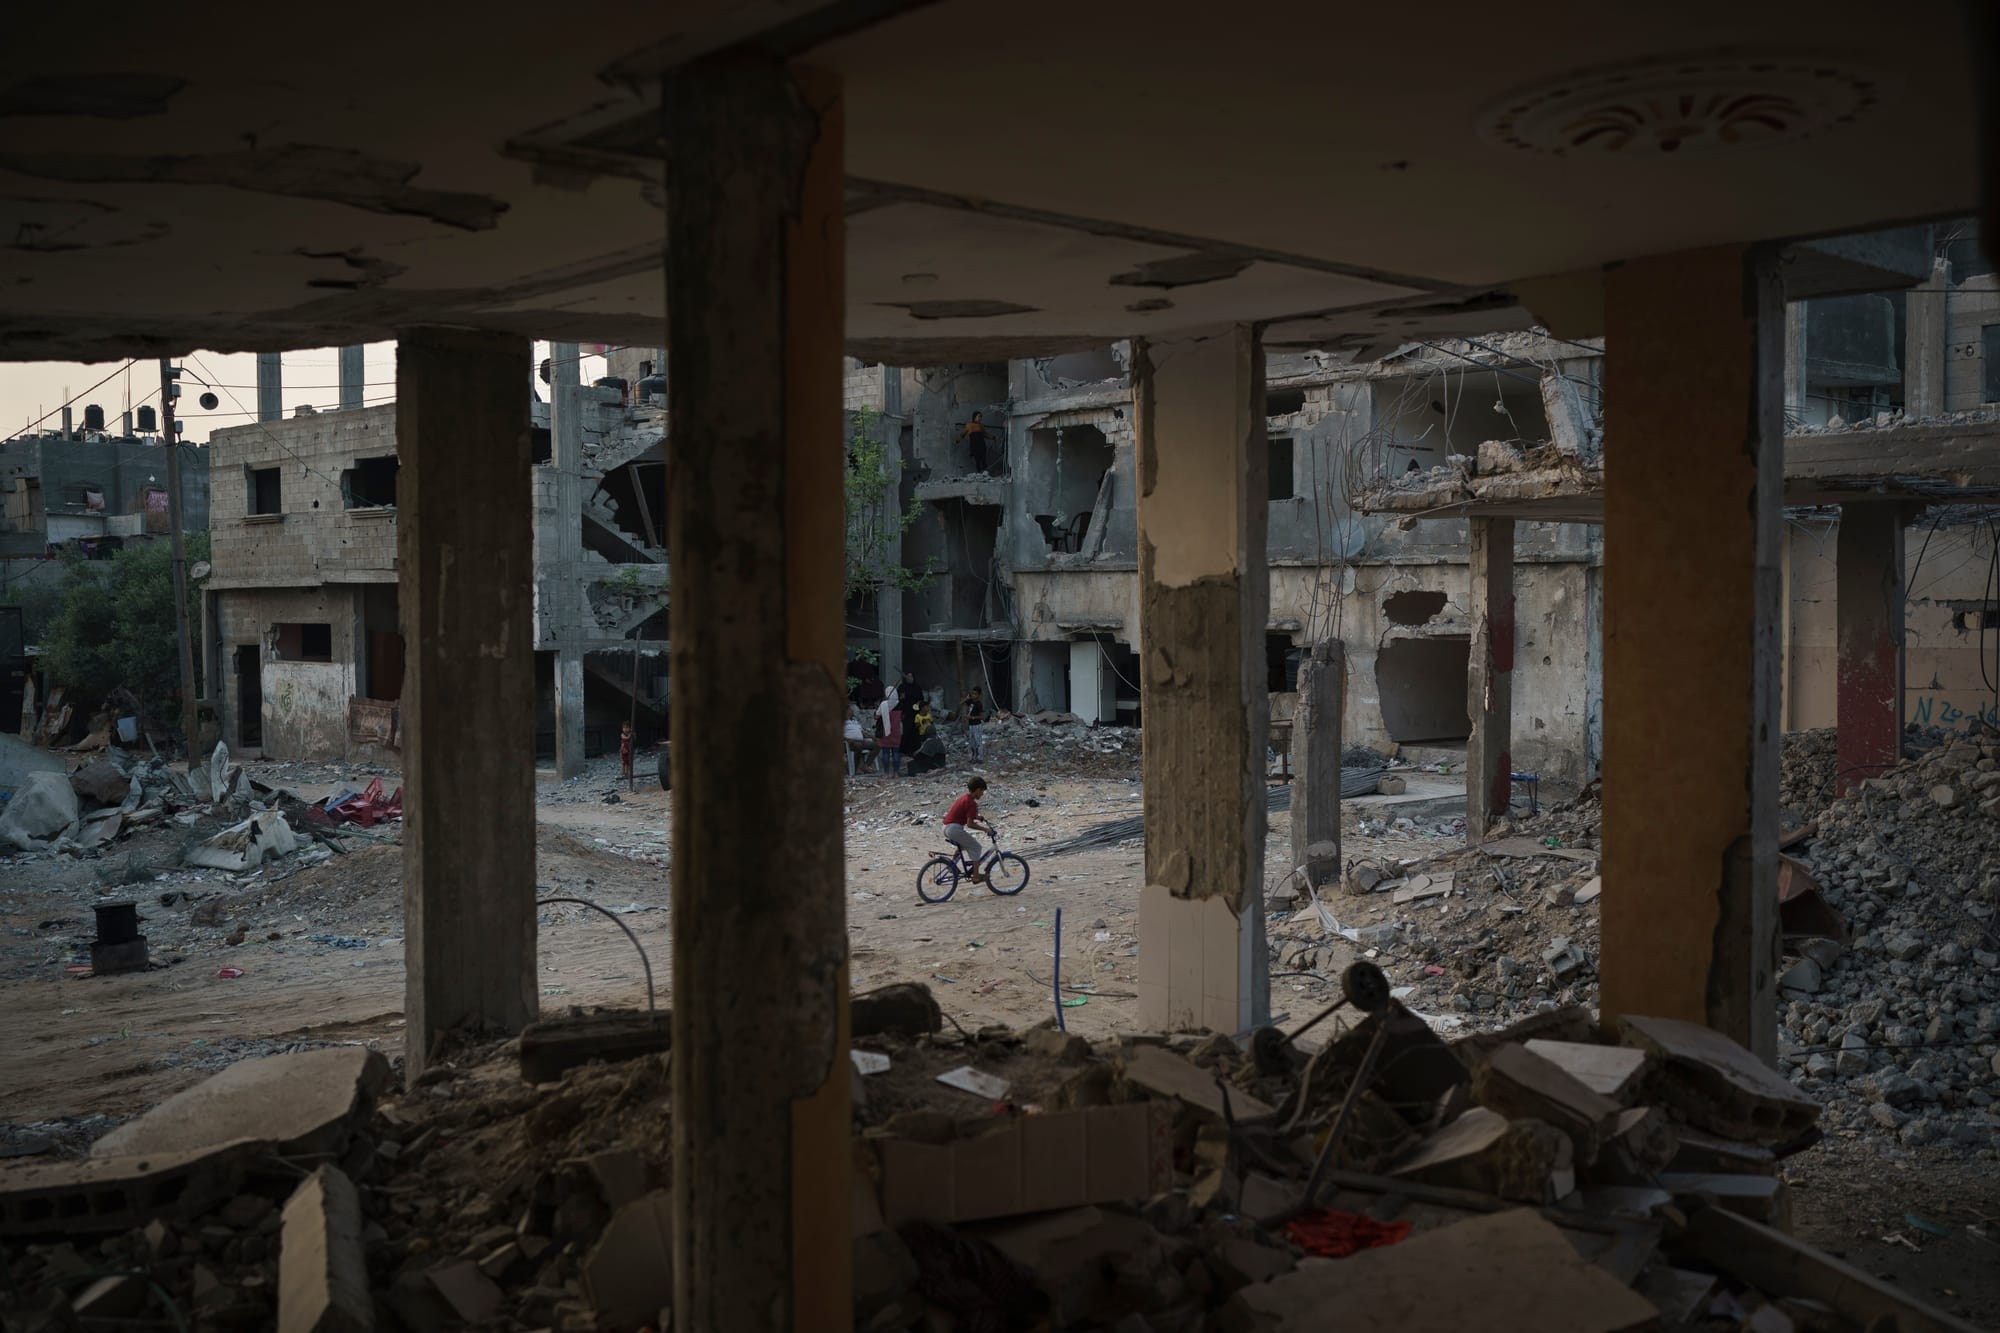 A boy rides his bike along a street next to houses heavily damaged by airstrikes during the recent 11-day war in Beit Hanoun in the northern Gaza Strip.